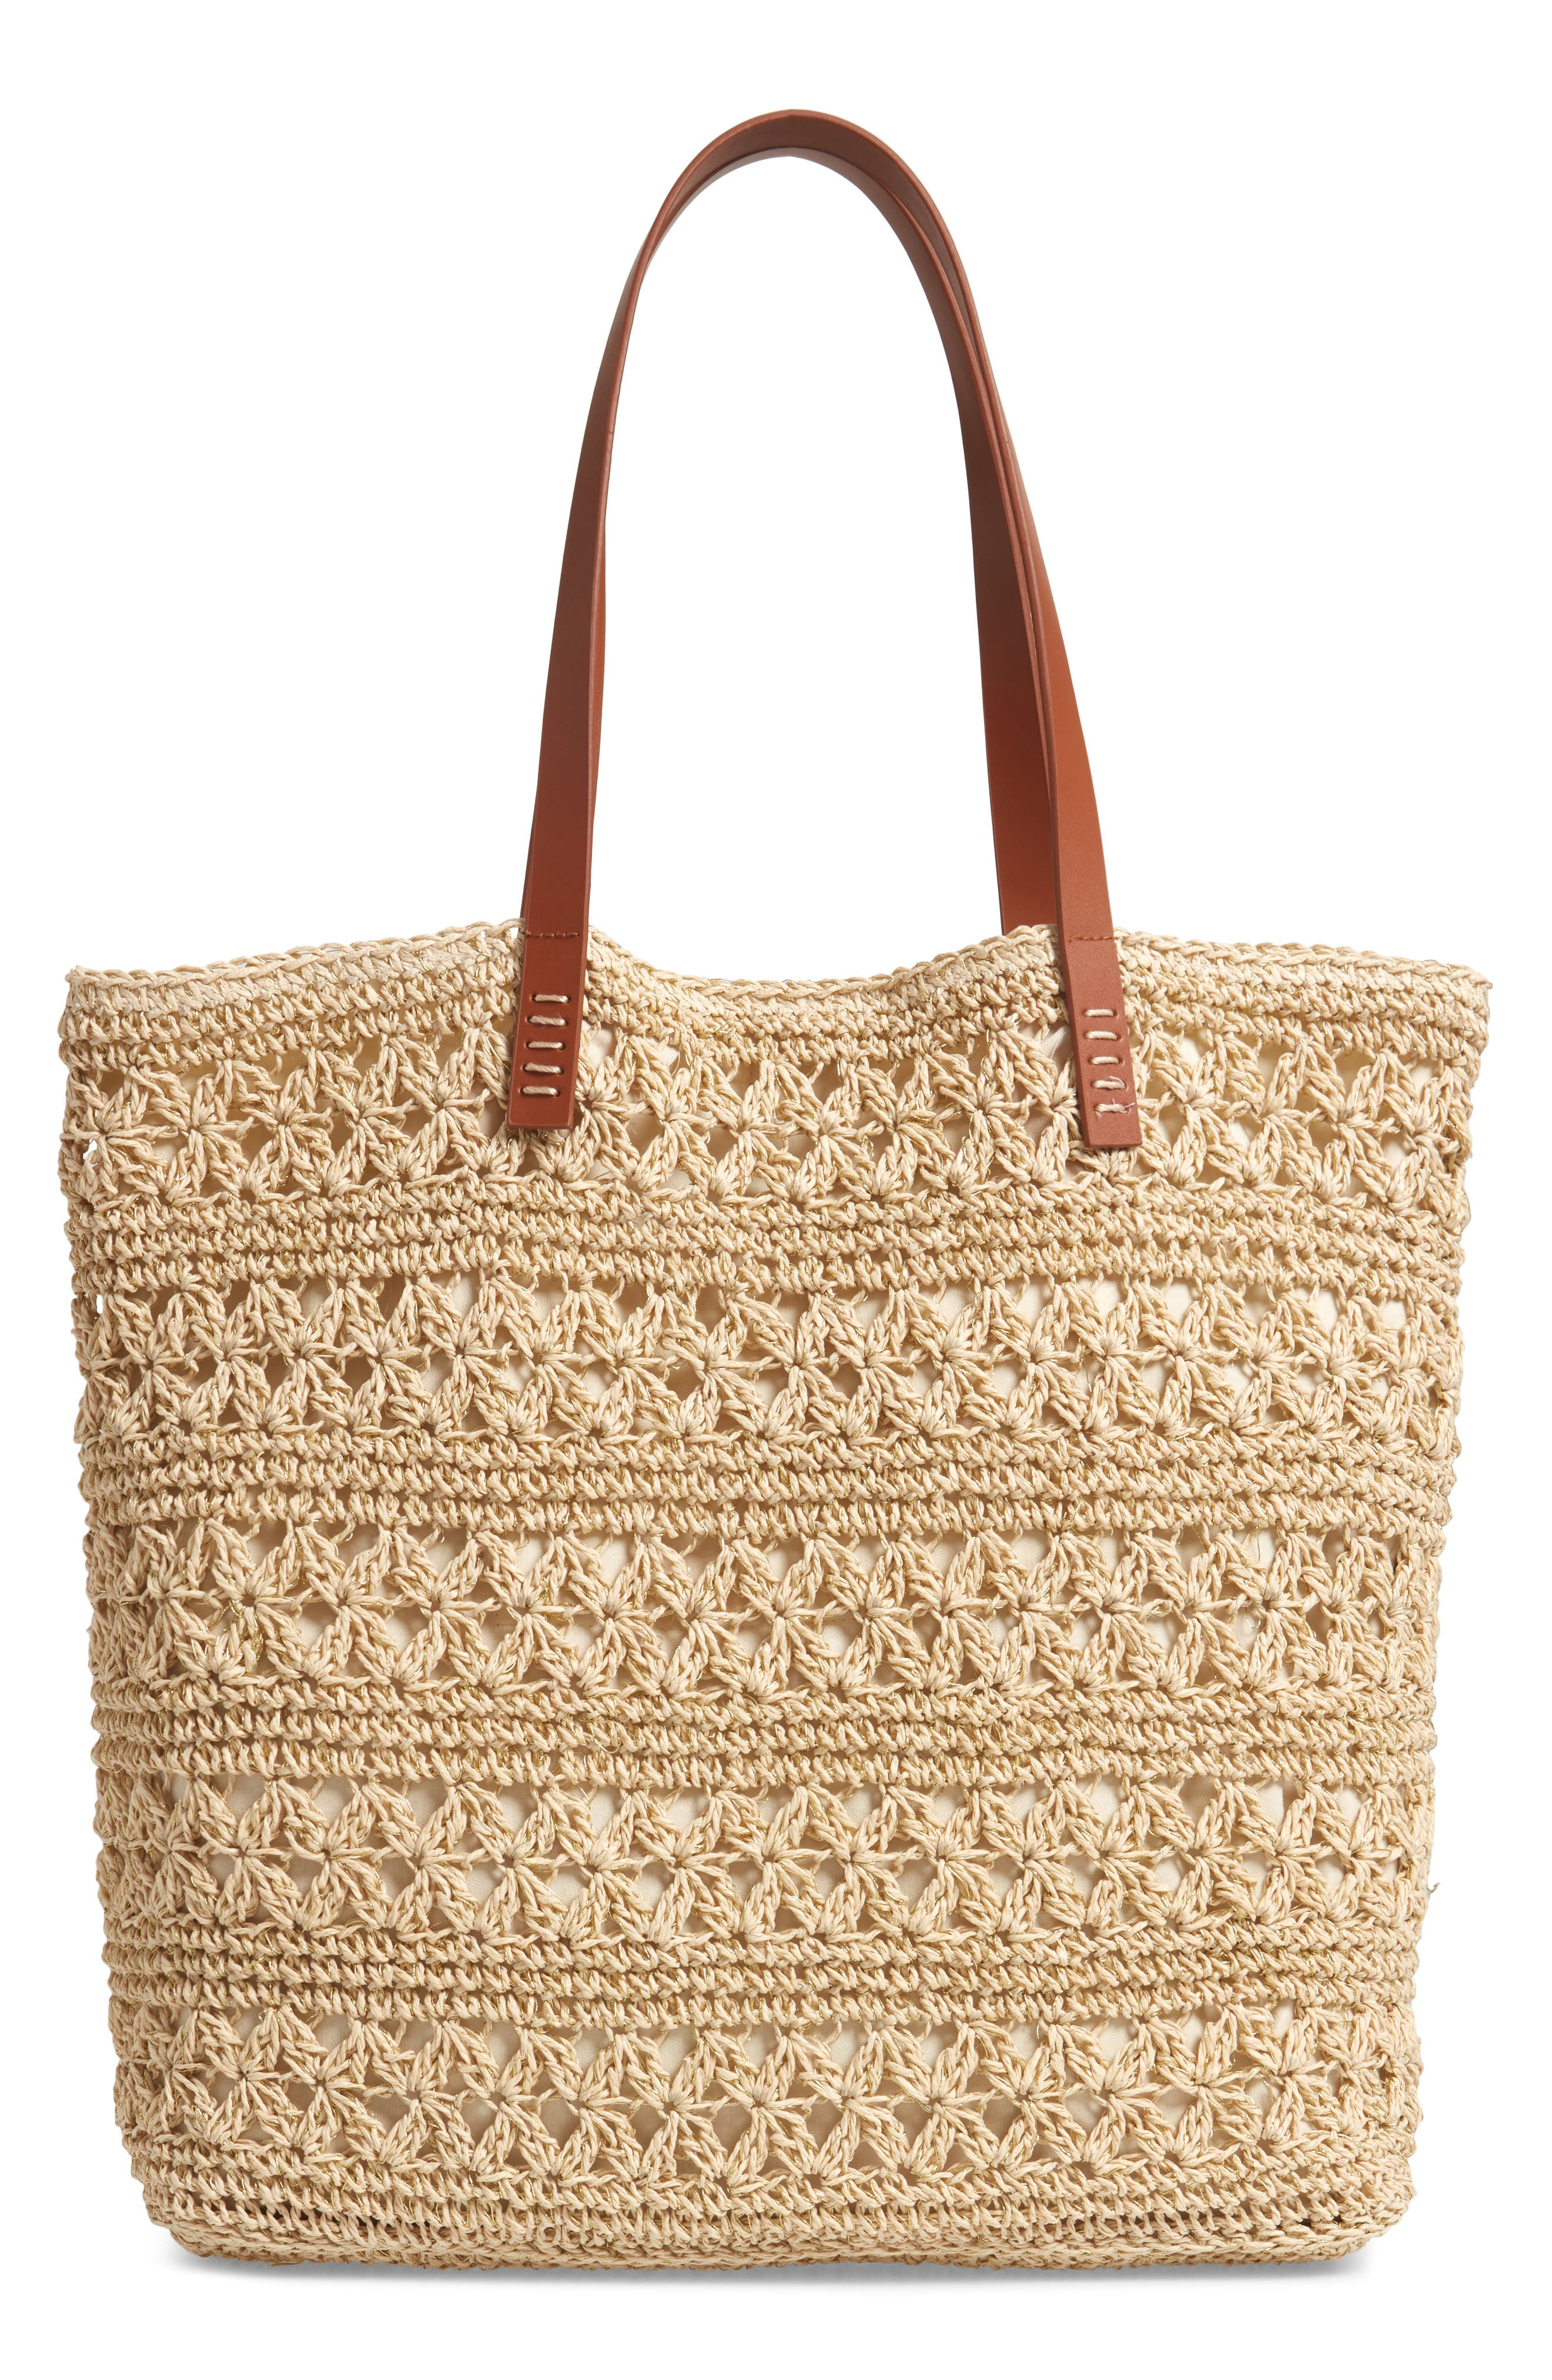 NORDSTROM,                             Packable Woven Raffia Tote,                             Alternate thumbnail 3, color,                             NATURAL